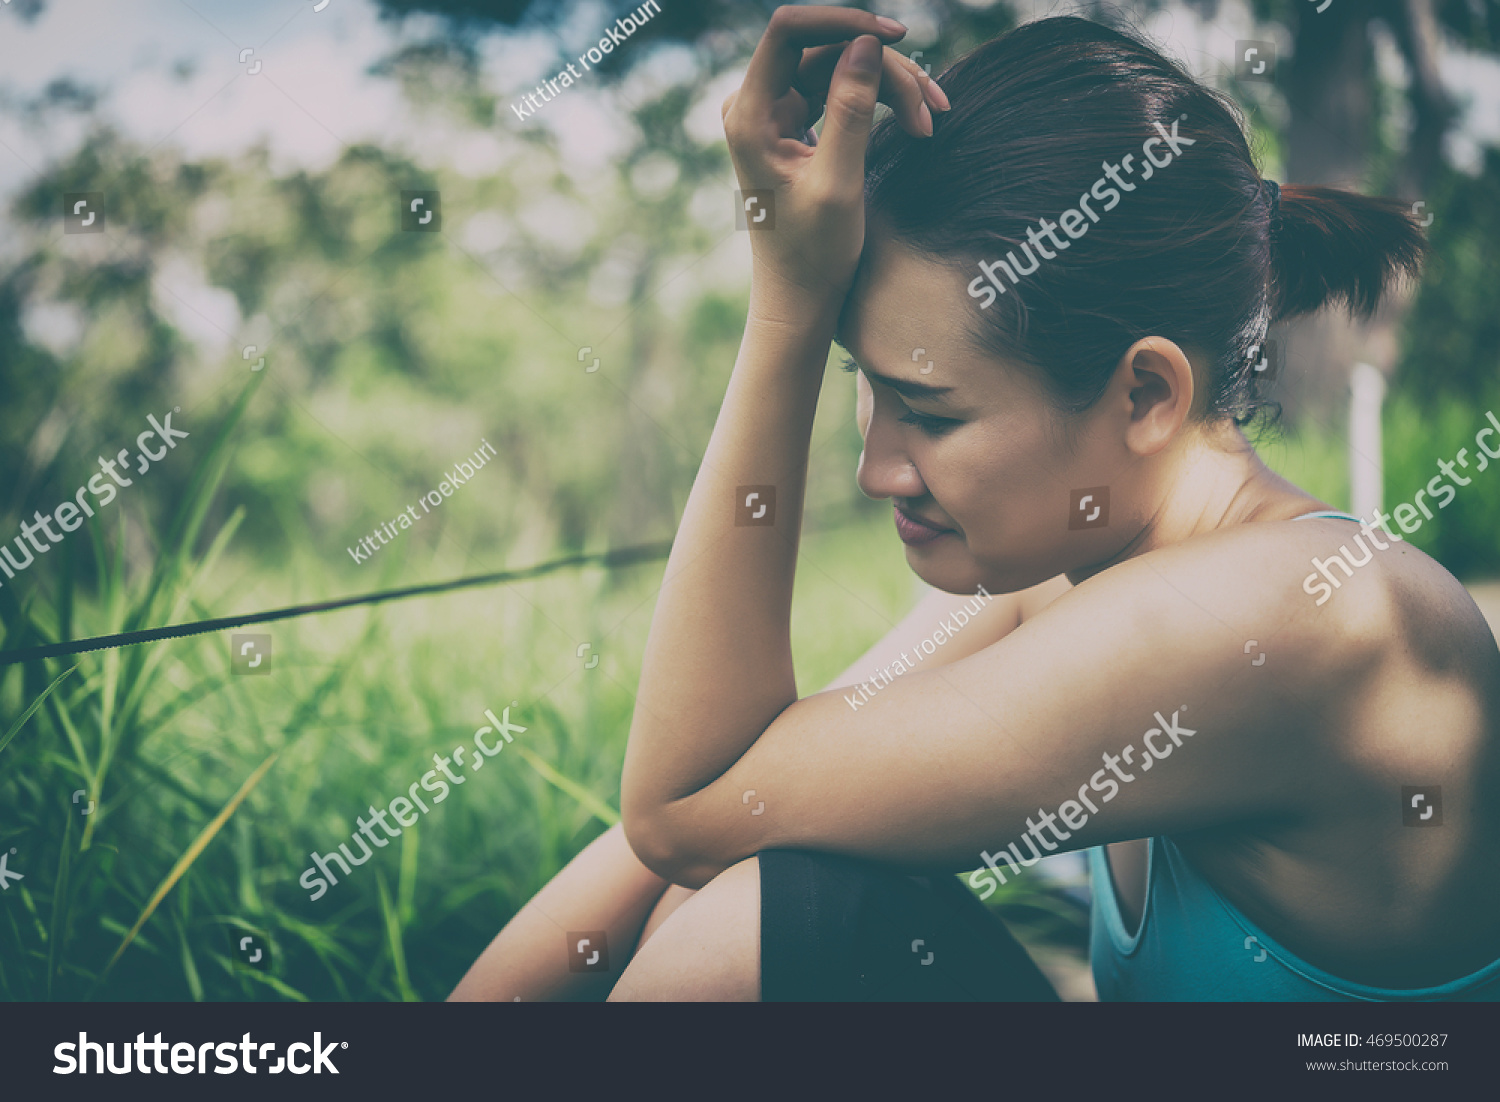 Sad Woman Use Head Touch Hand Stock Photo 469500287 - Shutterstock